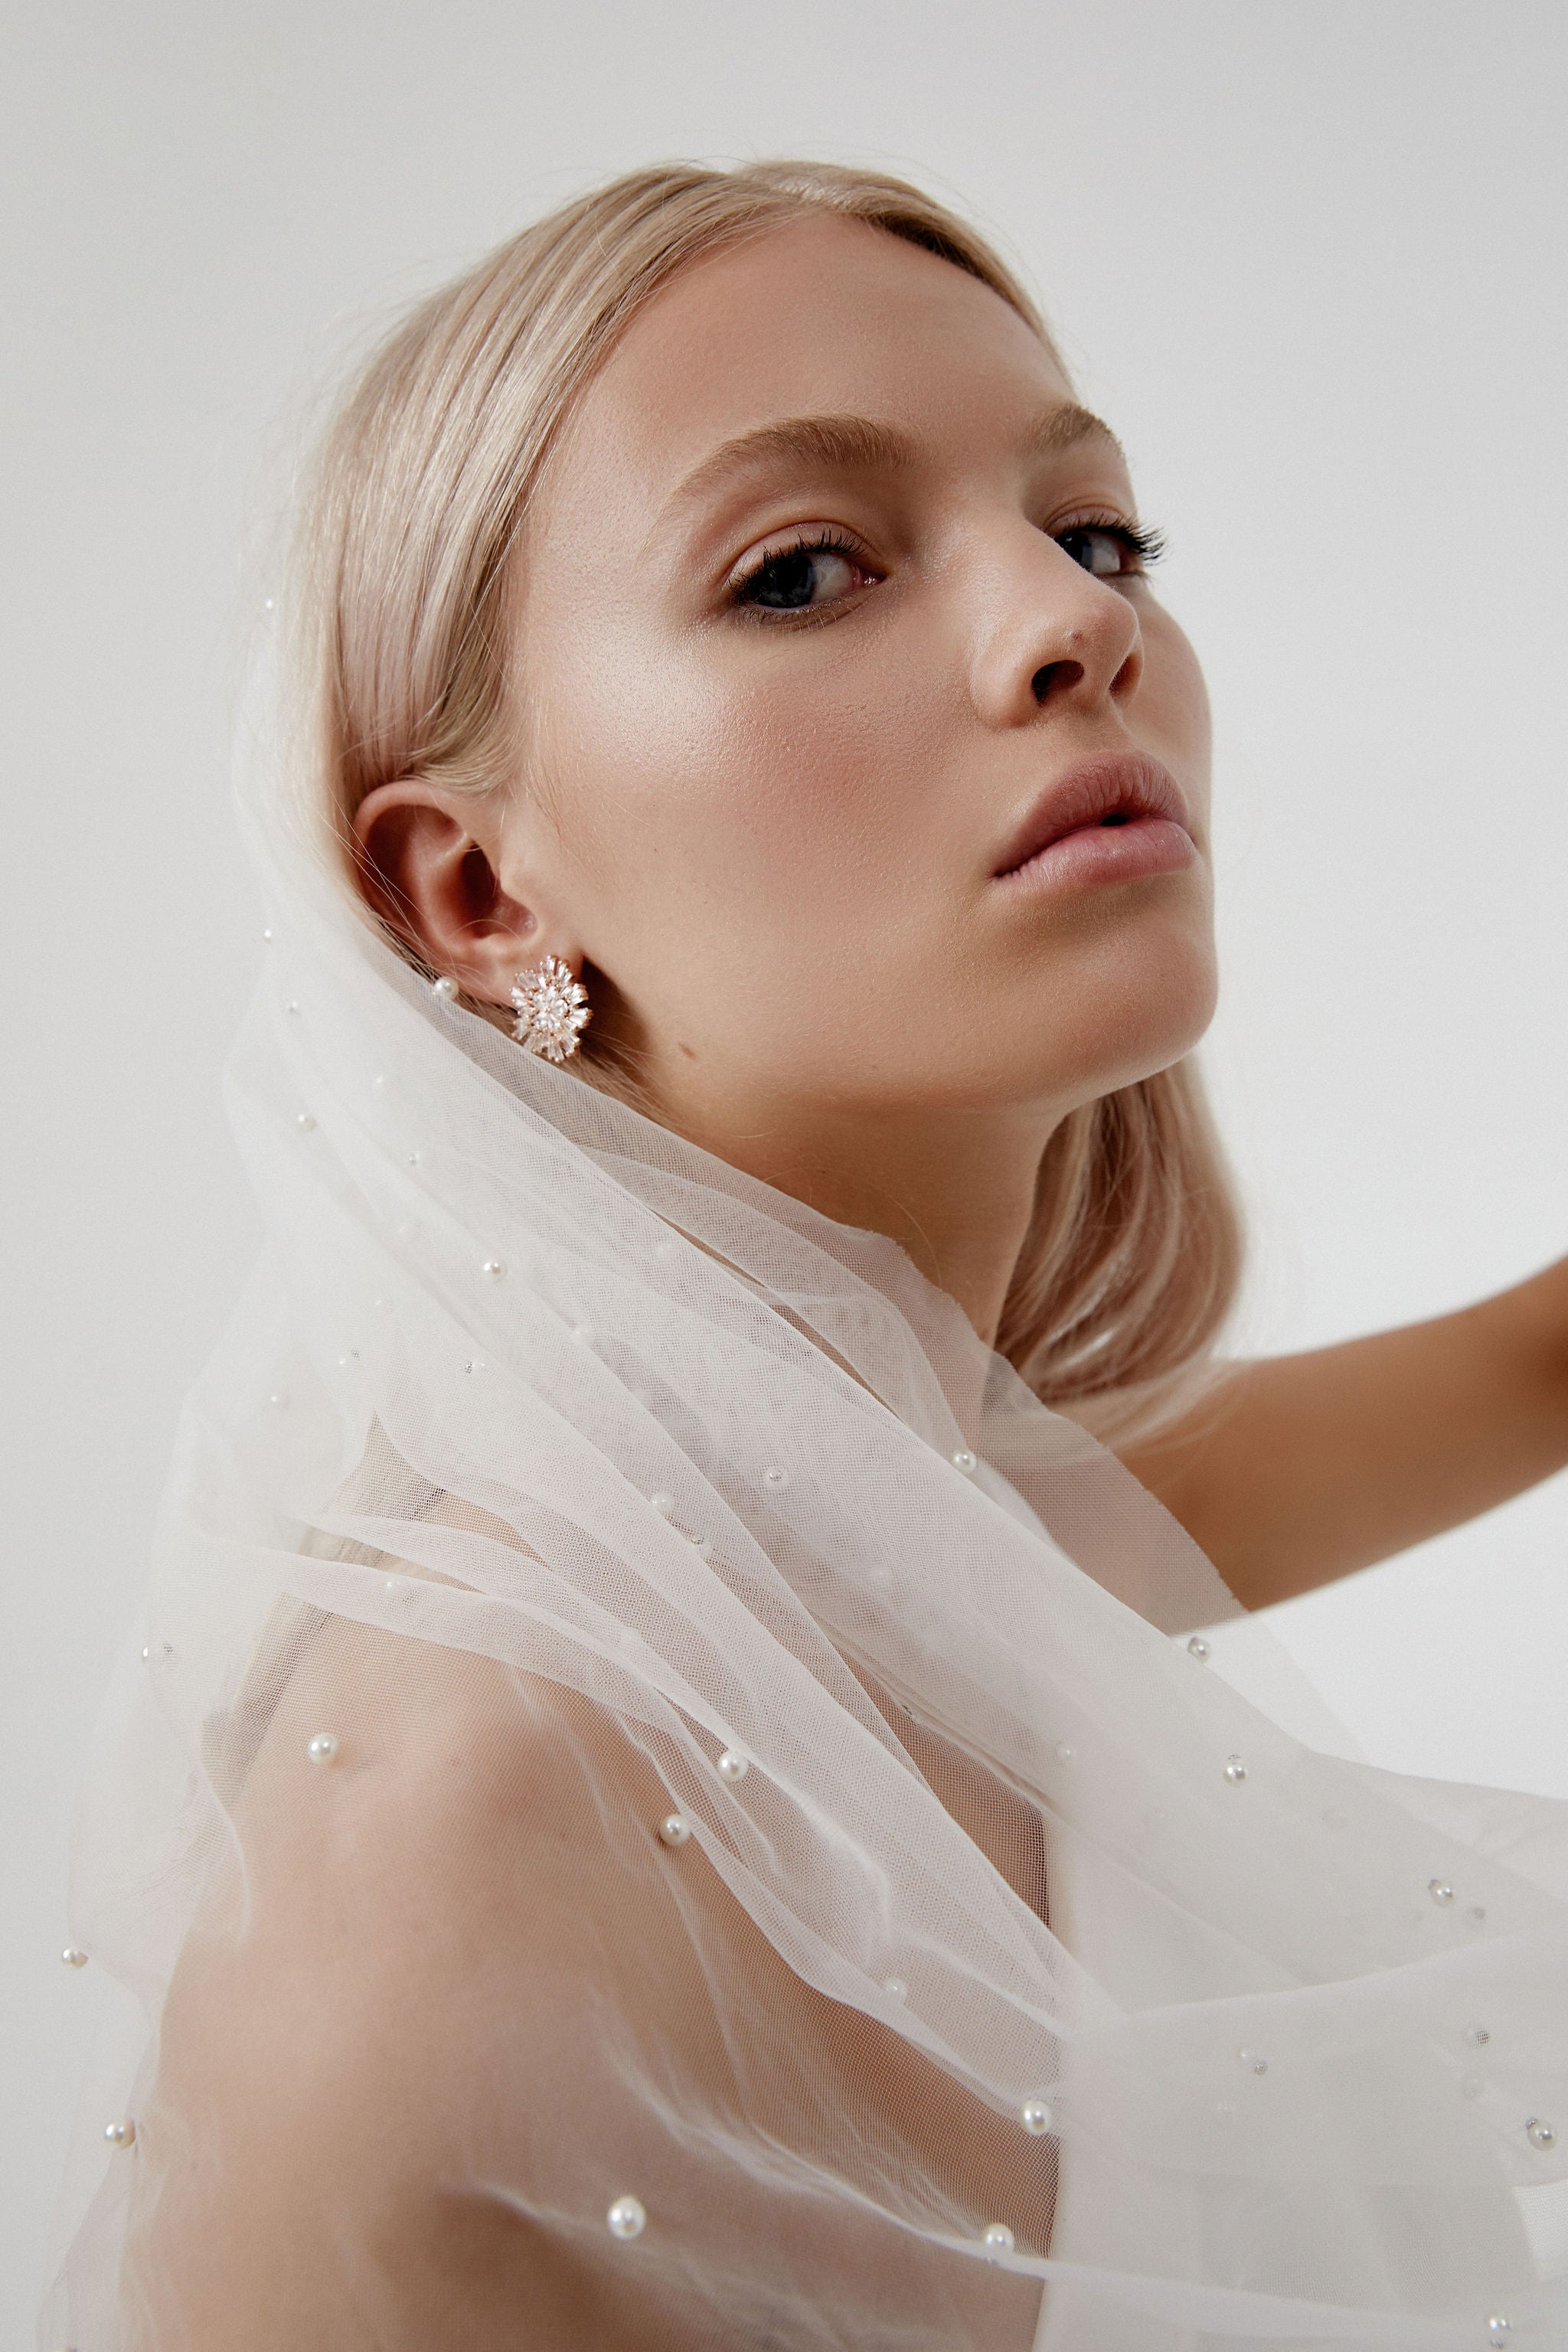 Bridal Earrings online Australia with vclip detachable veil for Amelie George bridal campaign 2020